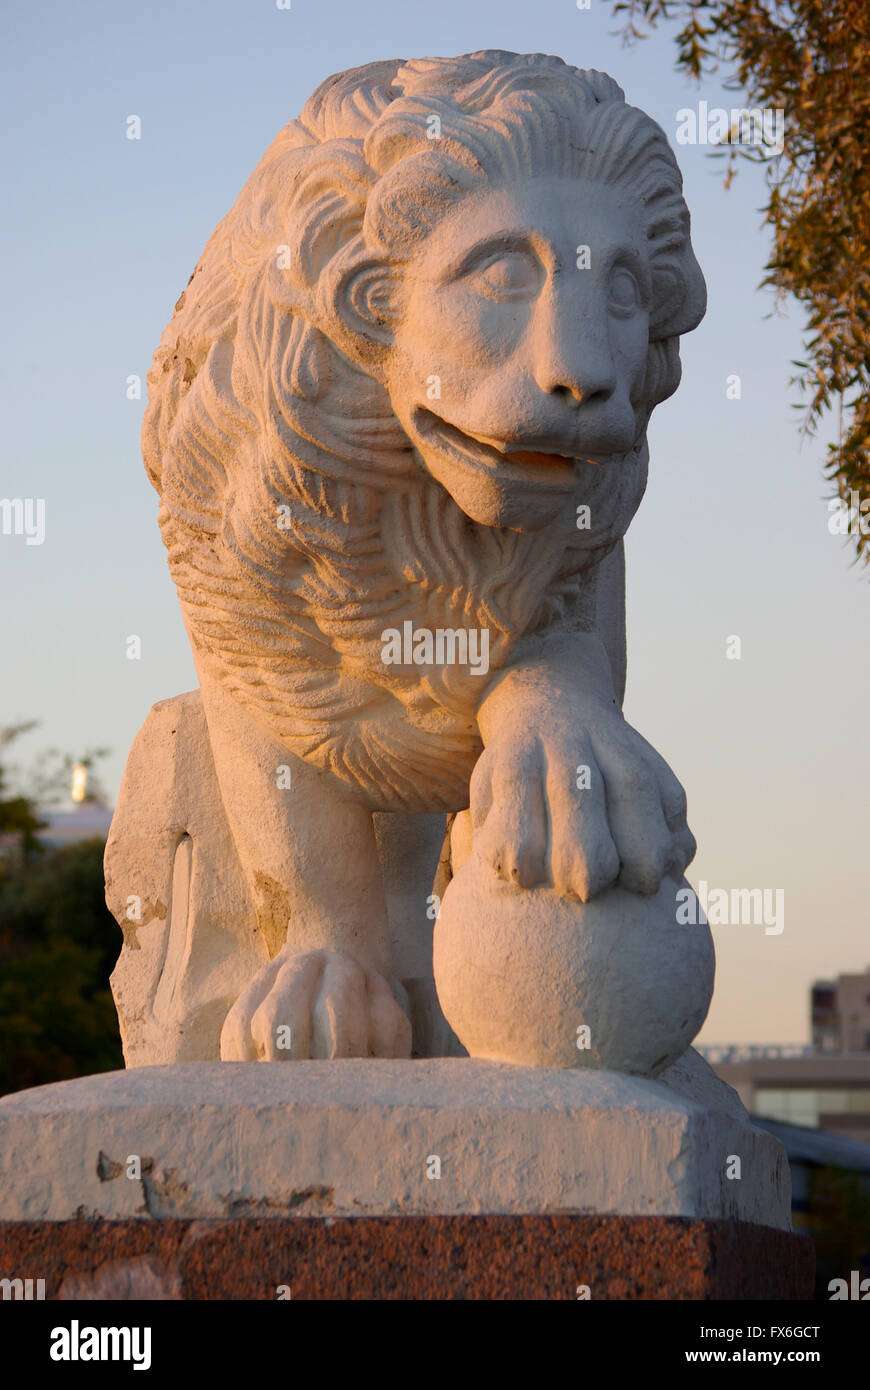 Russia. Sculpture of a lion watchdog. - Stock Image